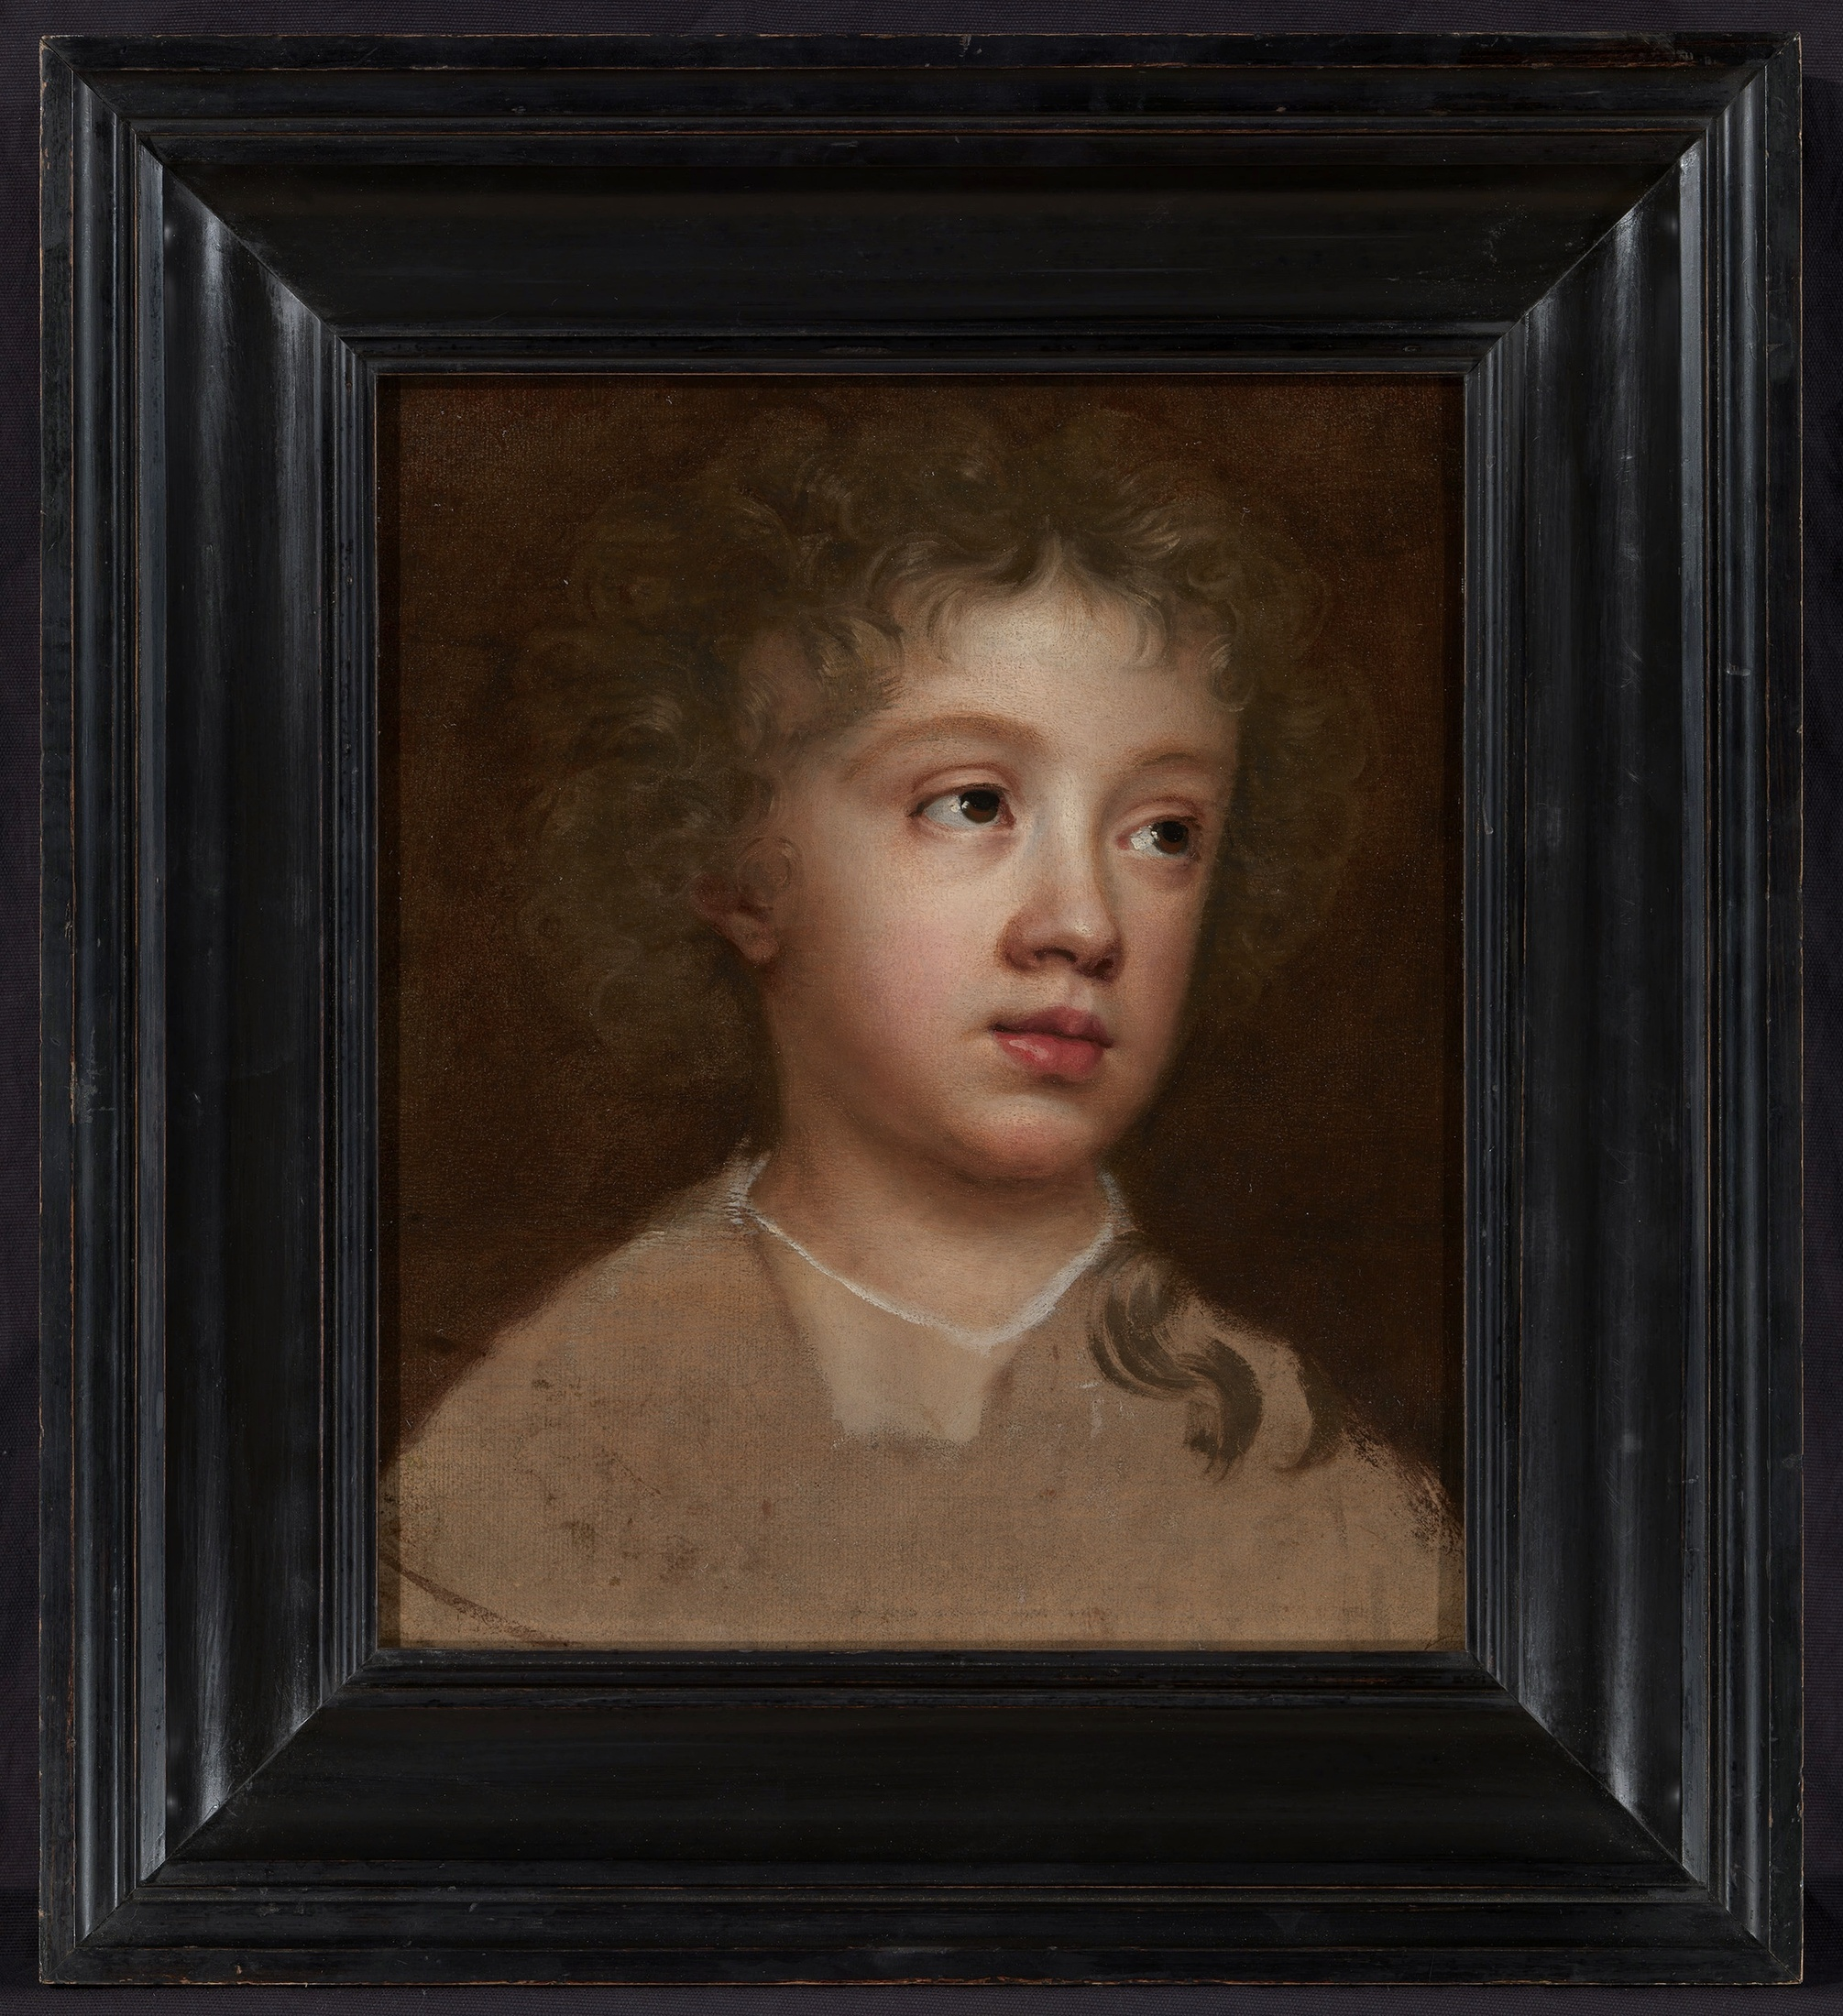 Portrait of Bartholomew, the artist's son